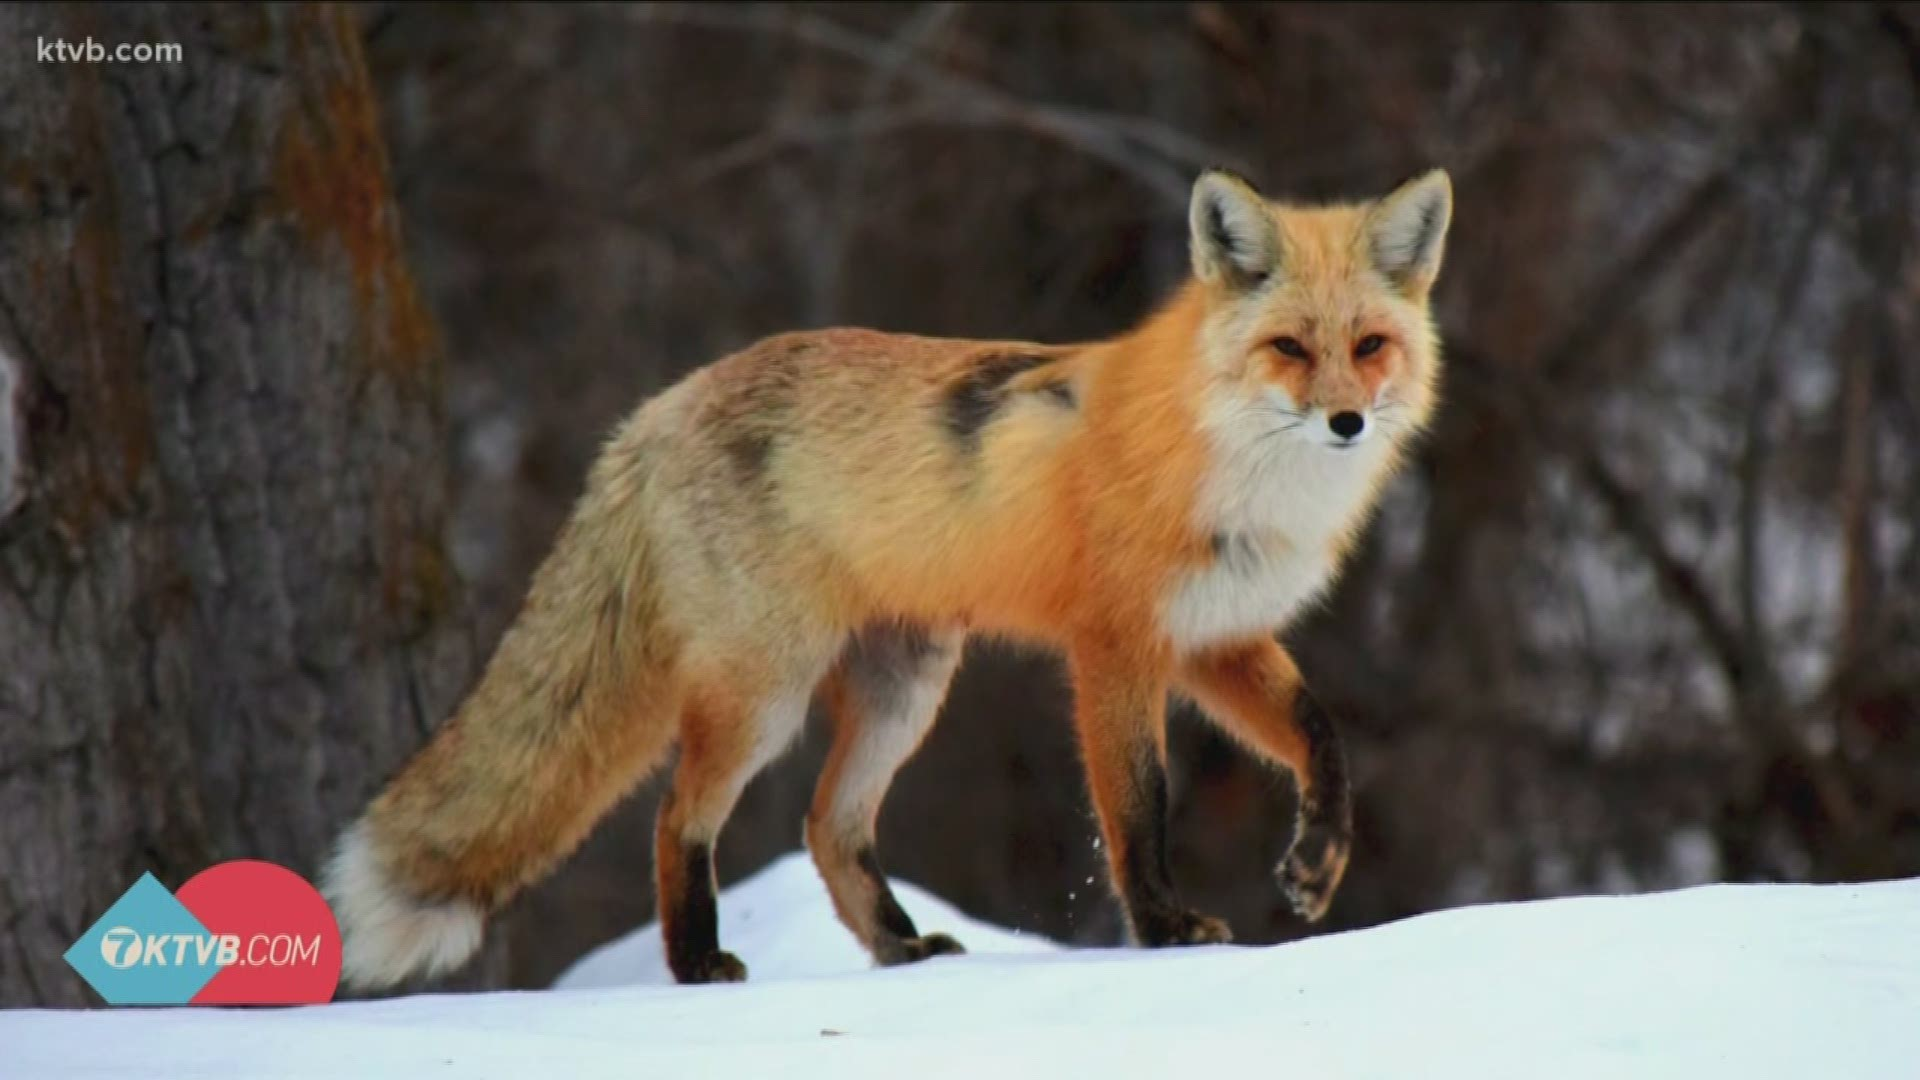 The Foxes Of Mccall Man Shares Stunning Photos Of Local Wildlife Ktvb Com